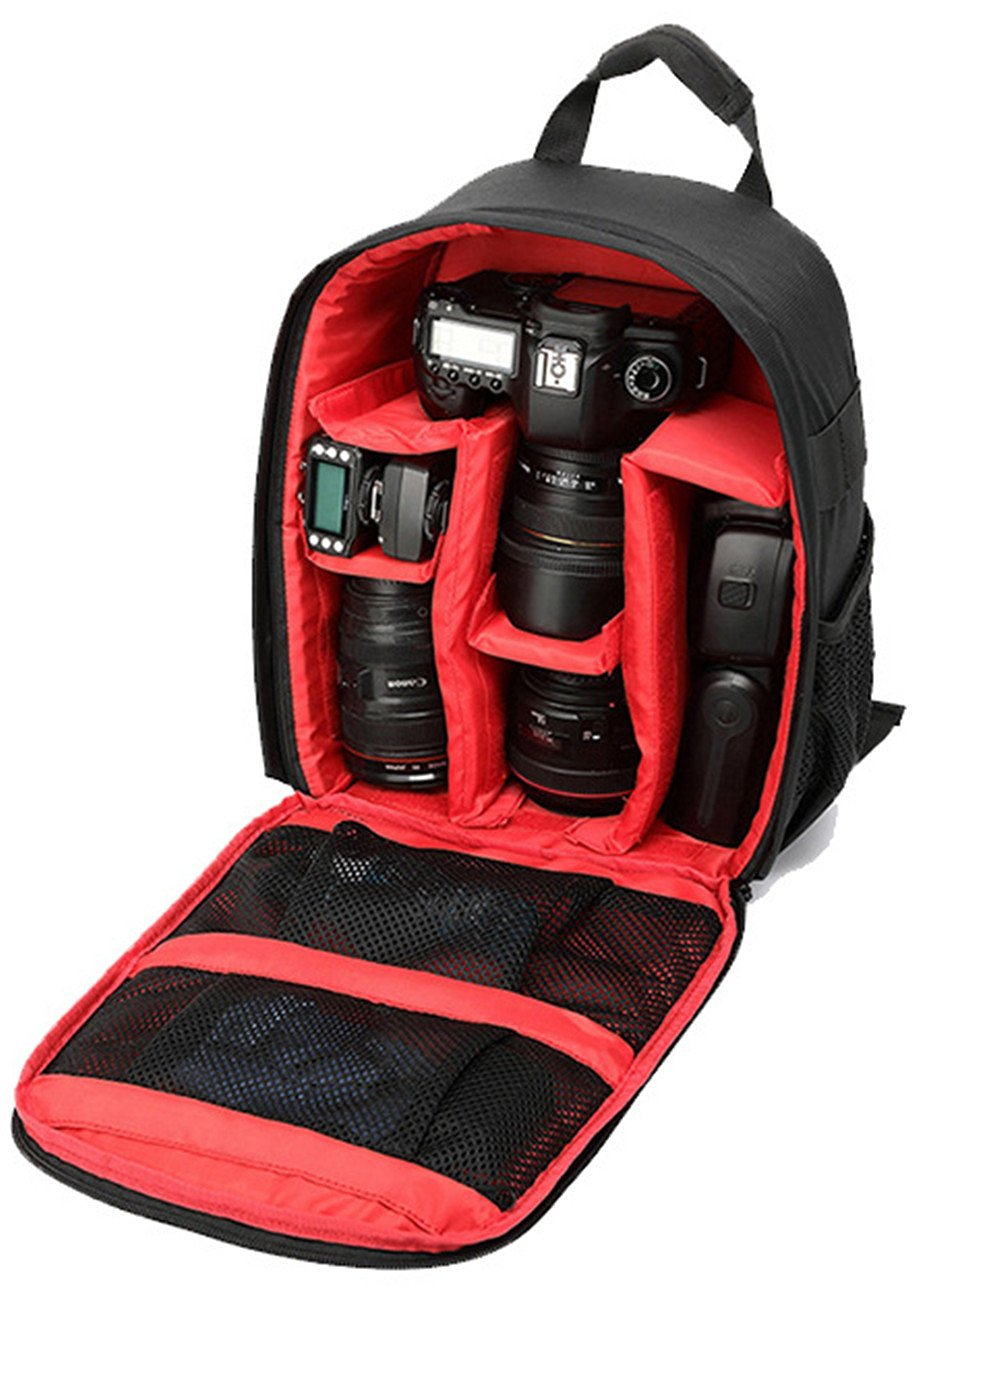 DSLR Camera Bag Backpack Video Photo Bags for Camera d3200 d3100 d5200 d7100 Small Compact Camera Backpack Green Lining